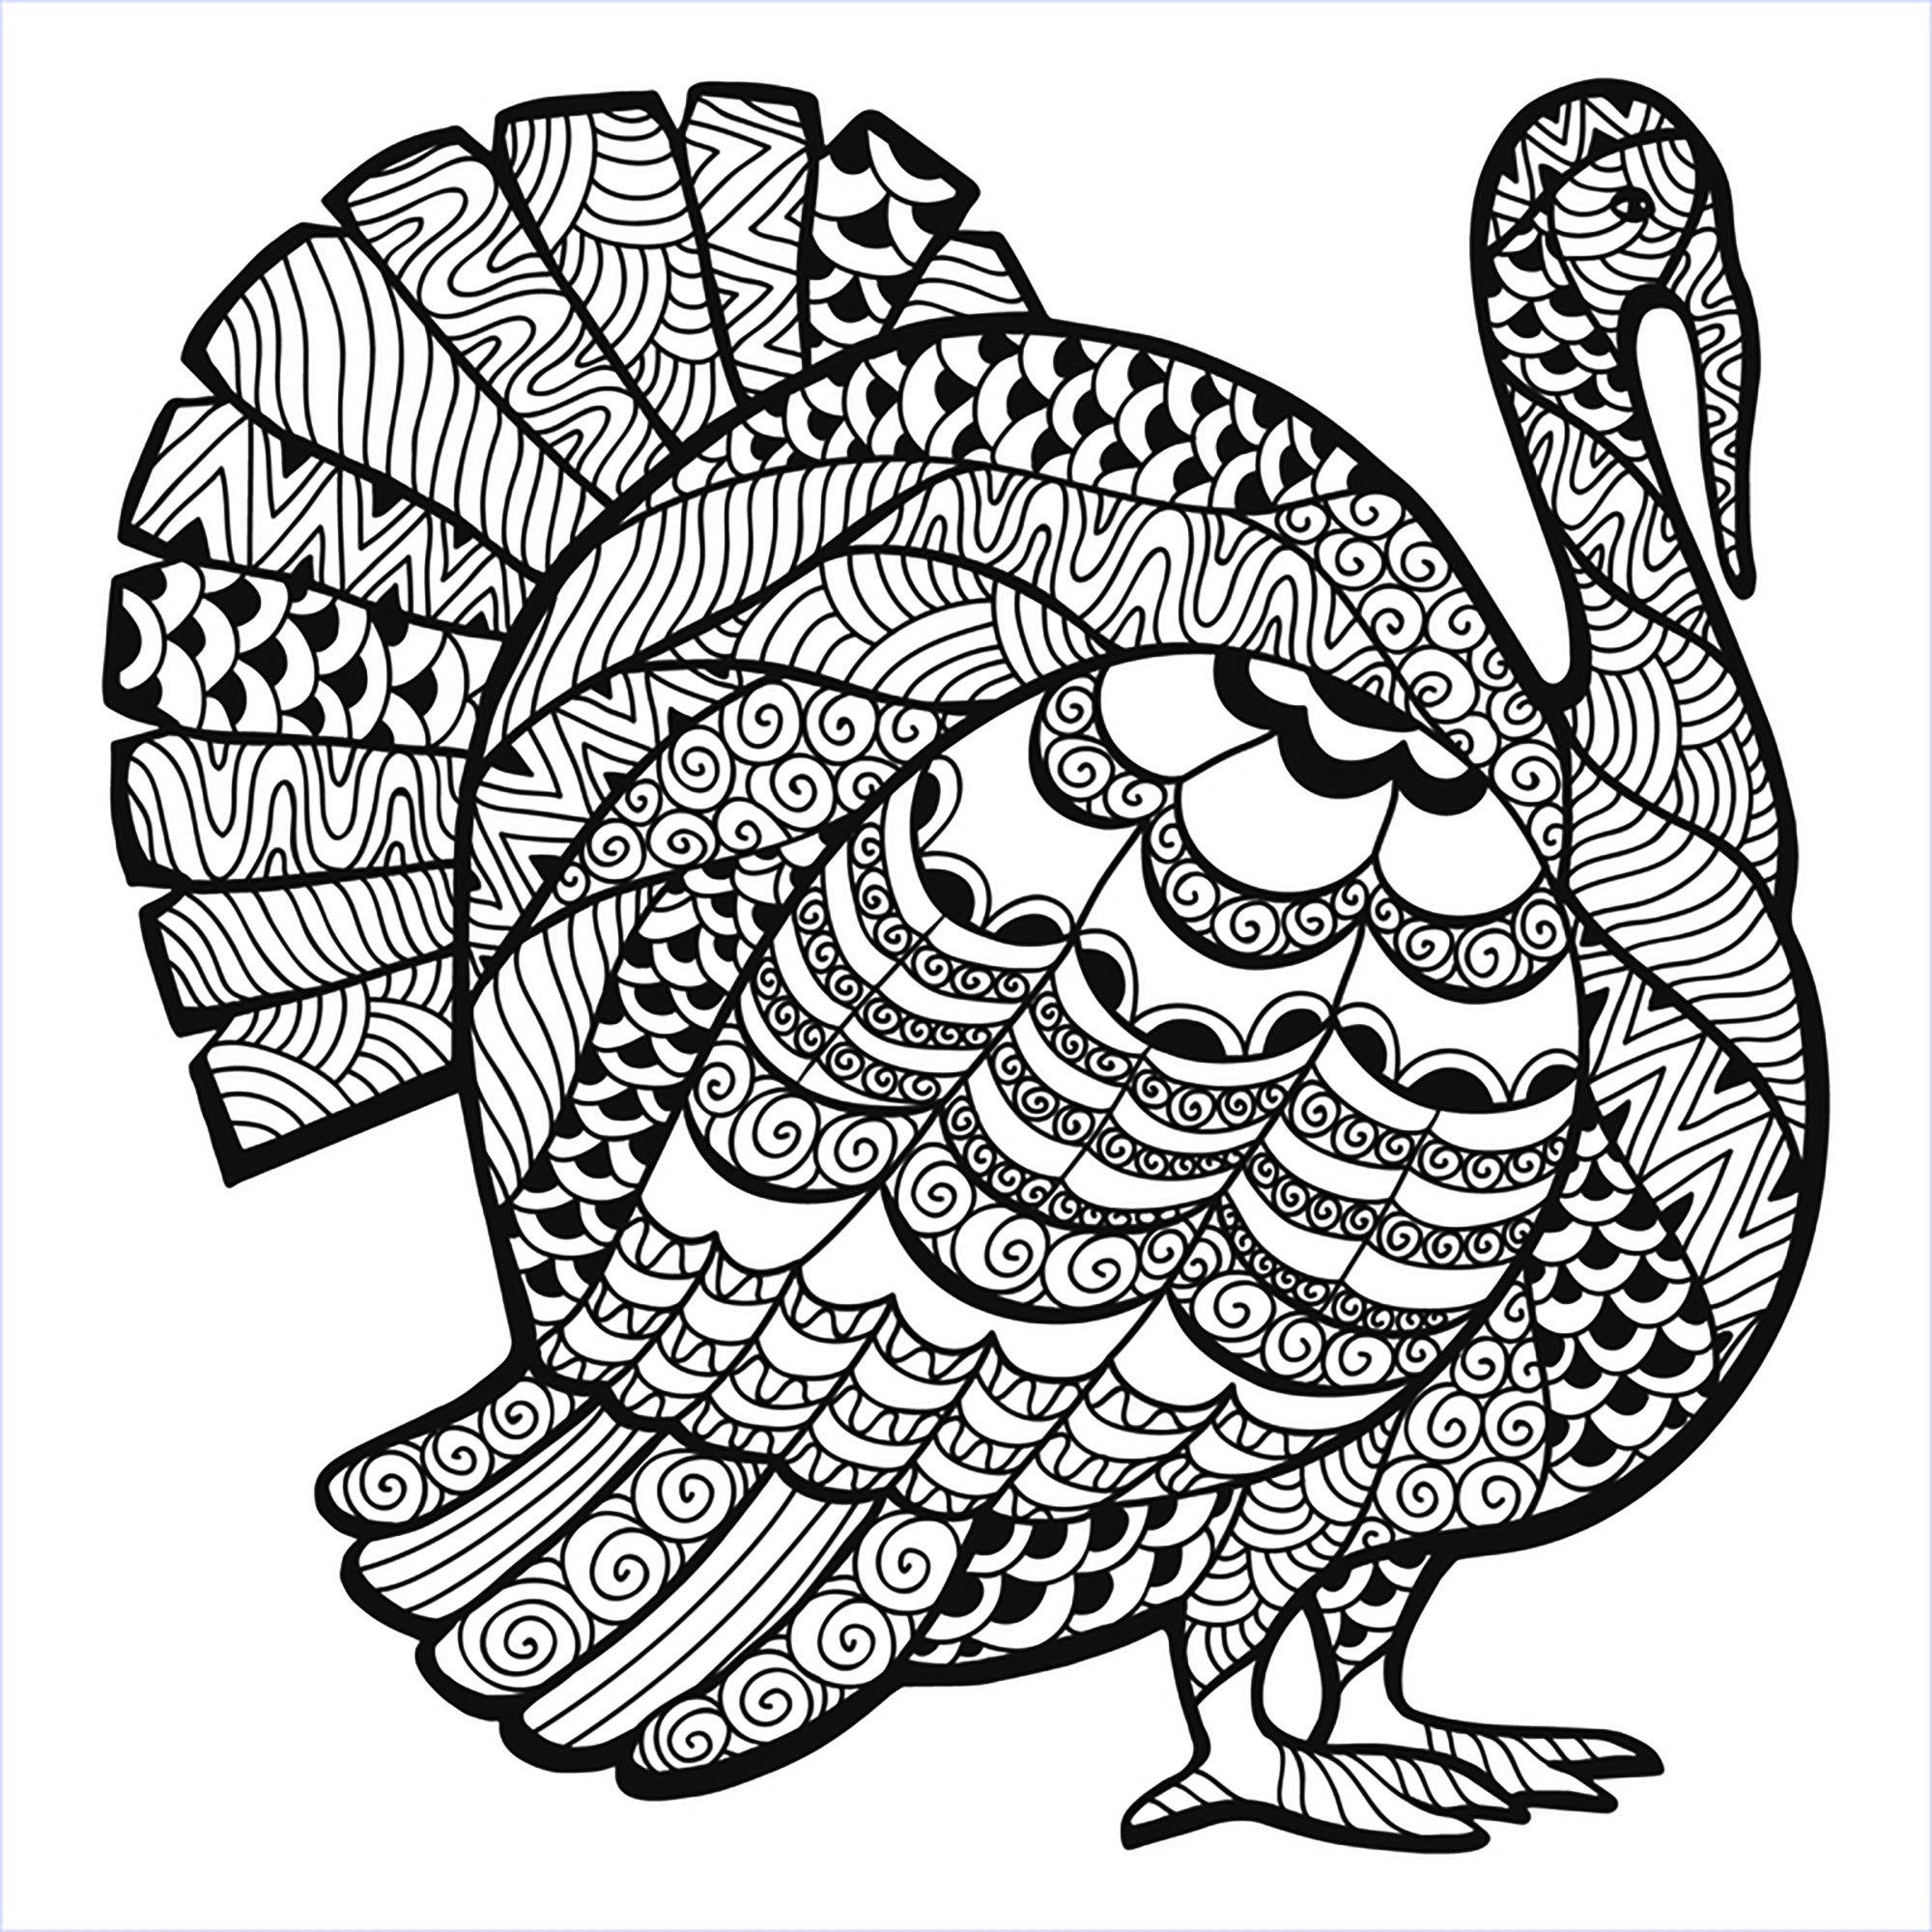 thanksgiving turkey zentangle coloring page - Thanksgiving Color Pages Free